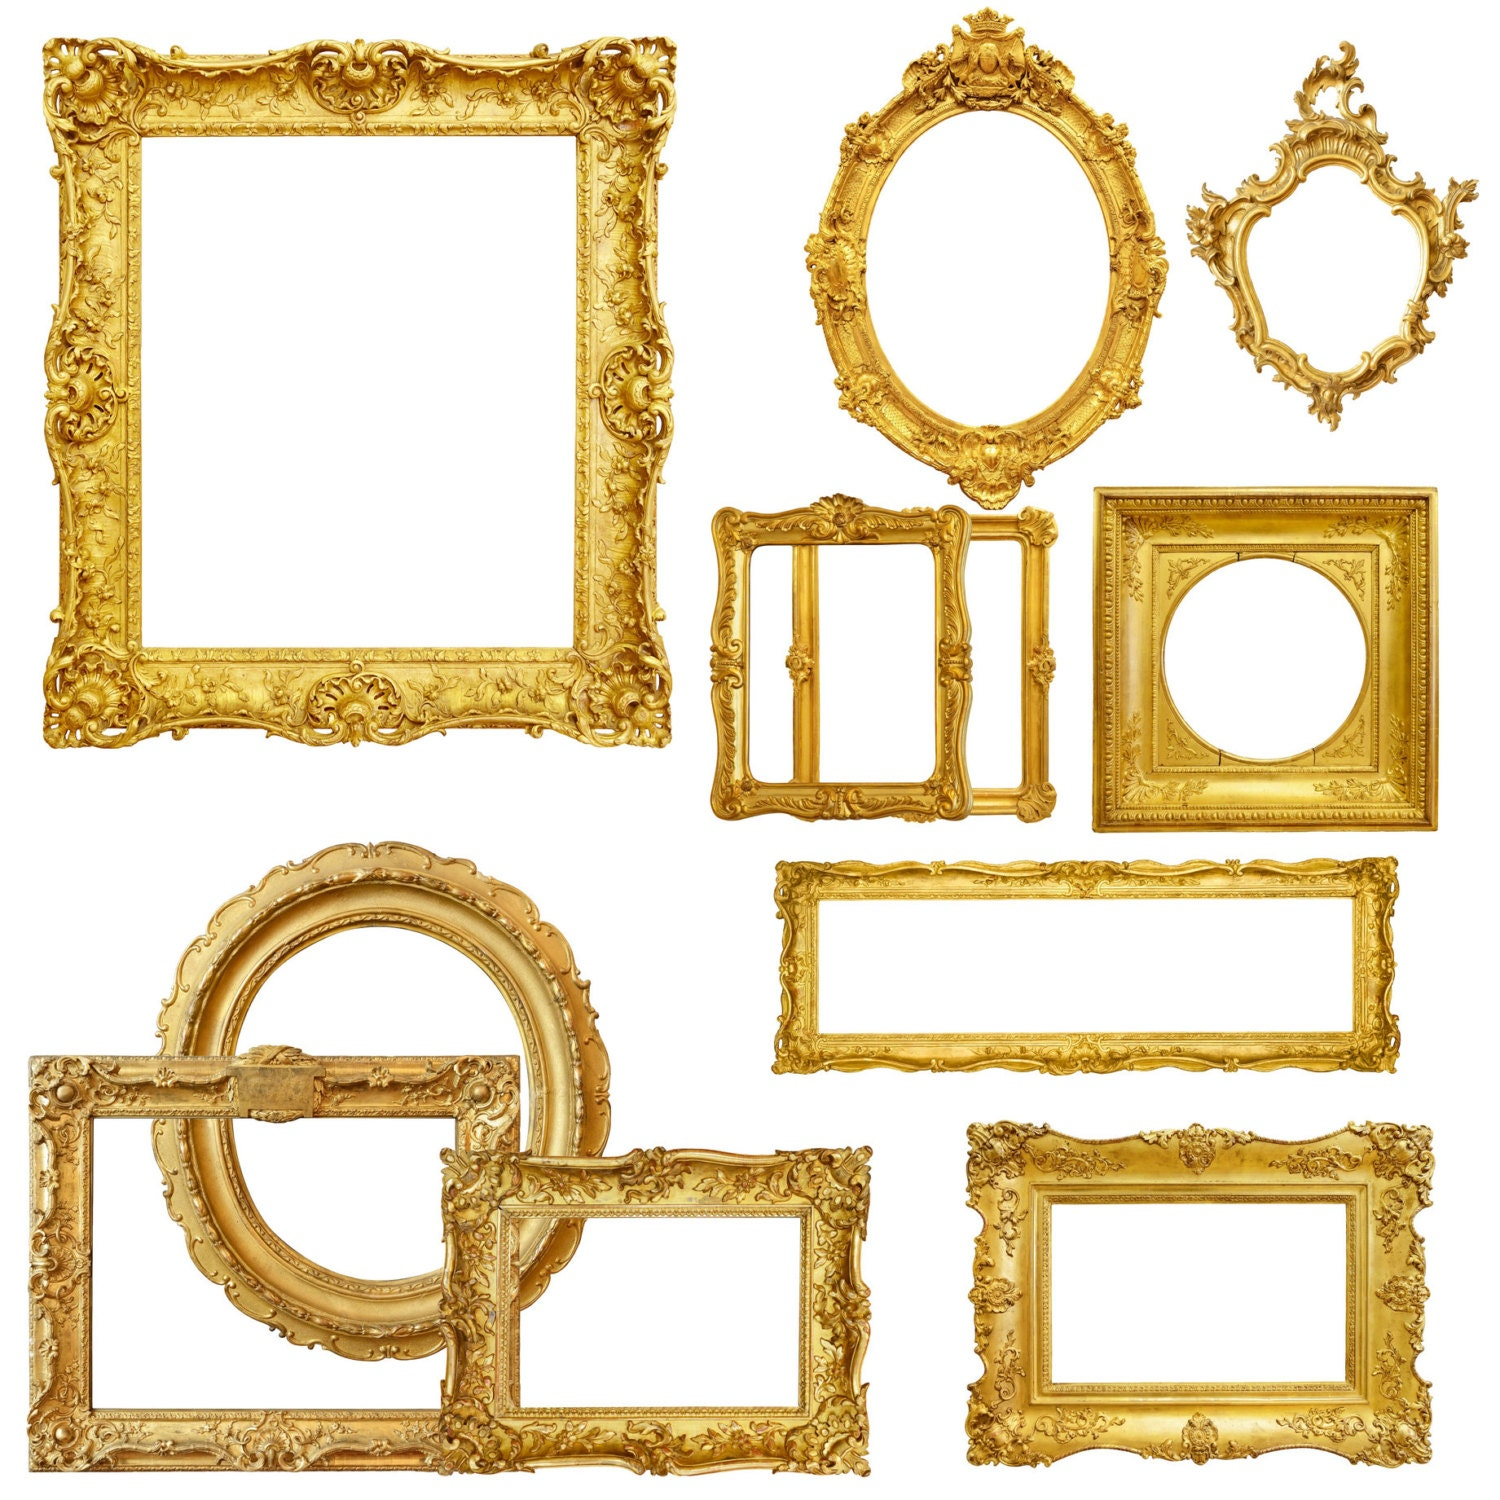 Gold picture frame clipart digital picture frames frame clip art this is a digital file jeuxipadfo Gallery